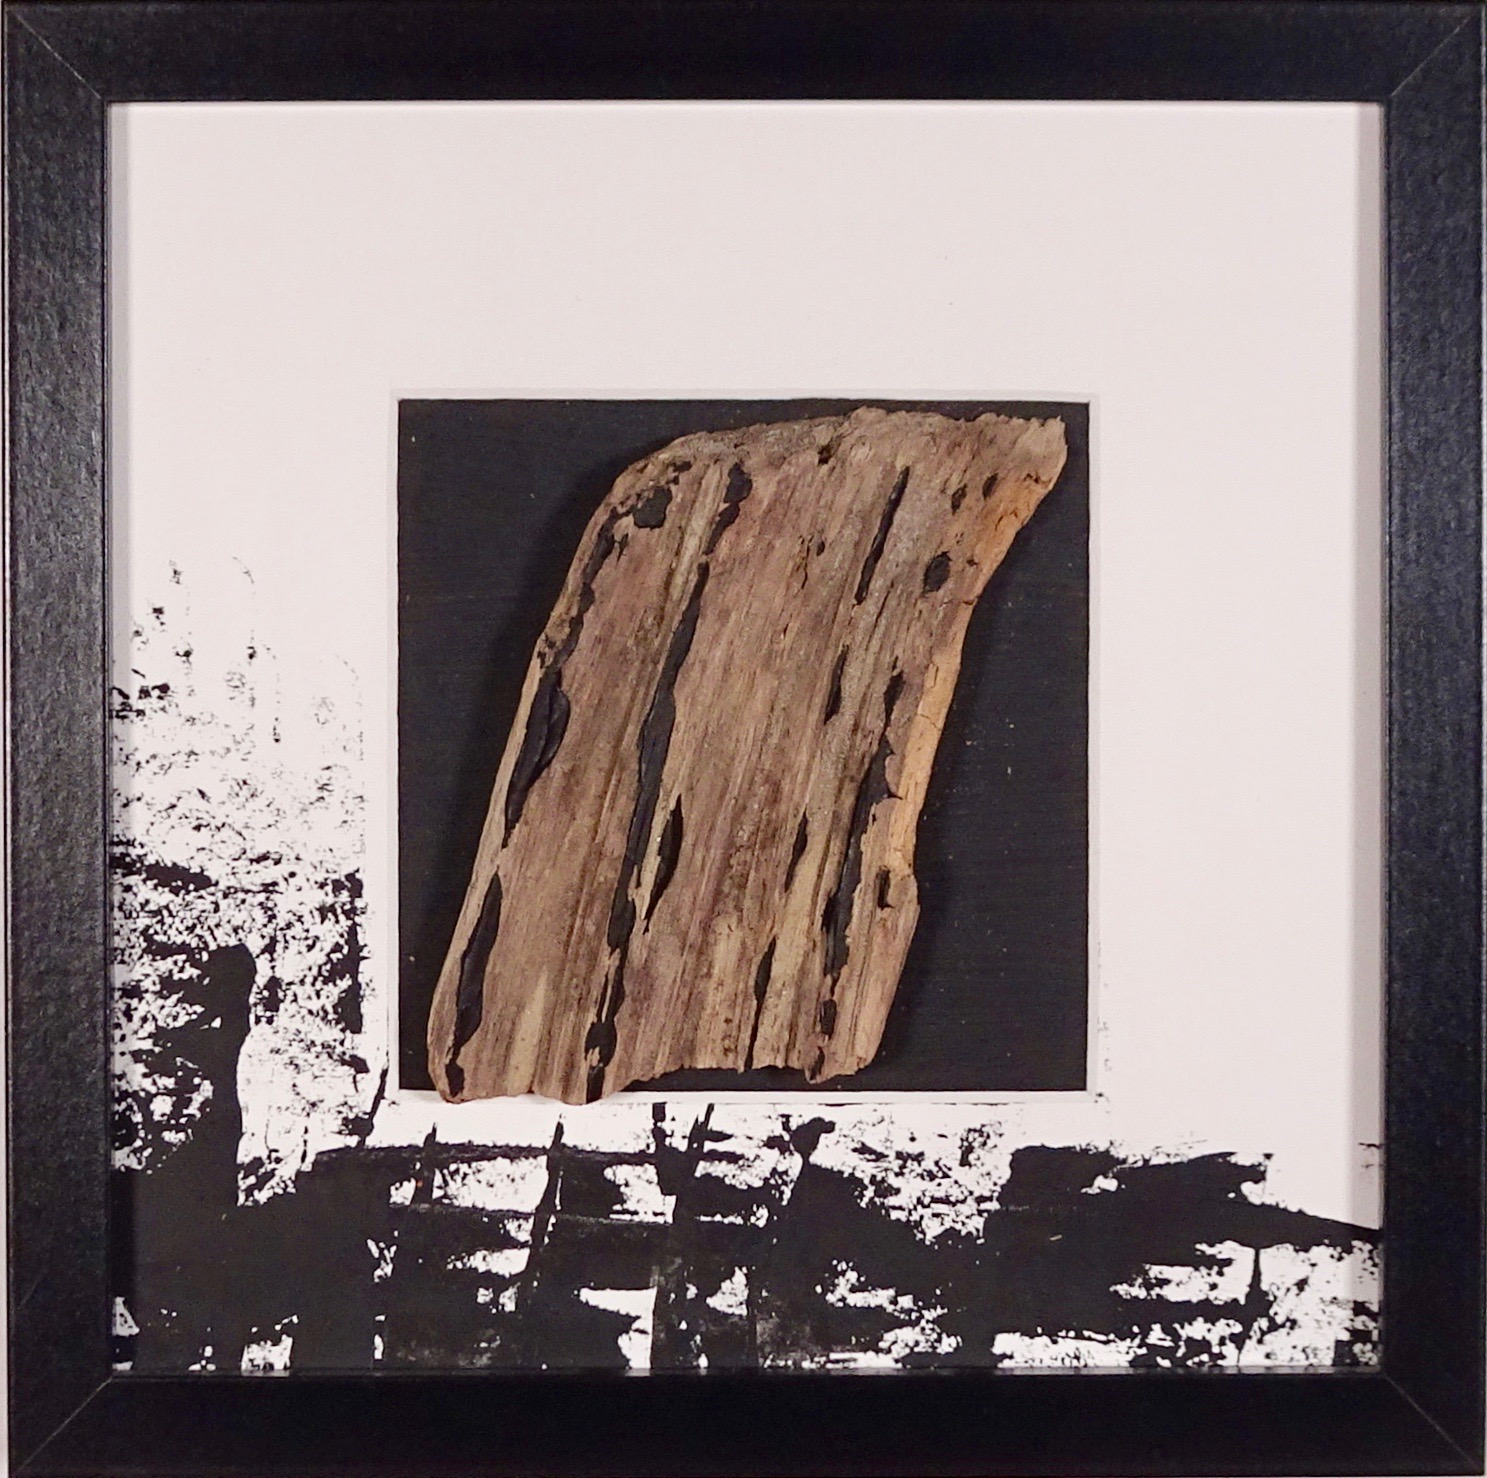 NAUFRAGIO #9 - Beached wood, acrylic, sea water on cardboard, 25x25cmm with passe-partout frame - AVAILABLE